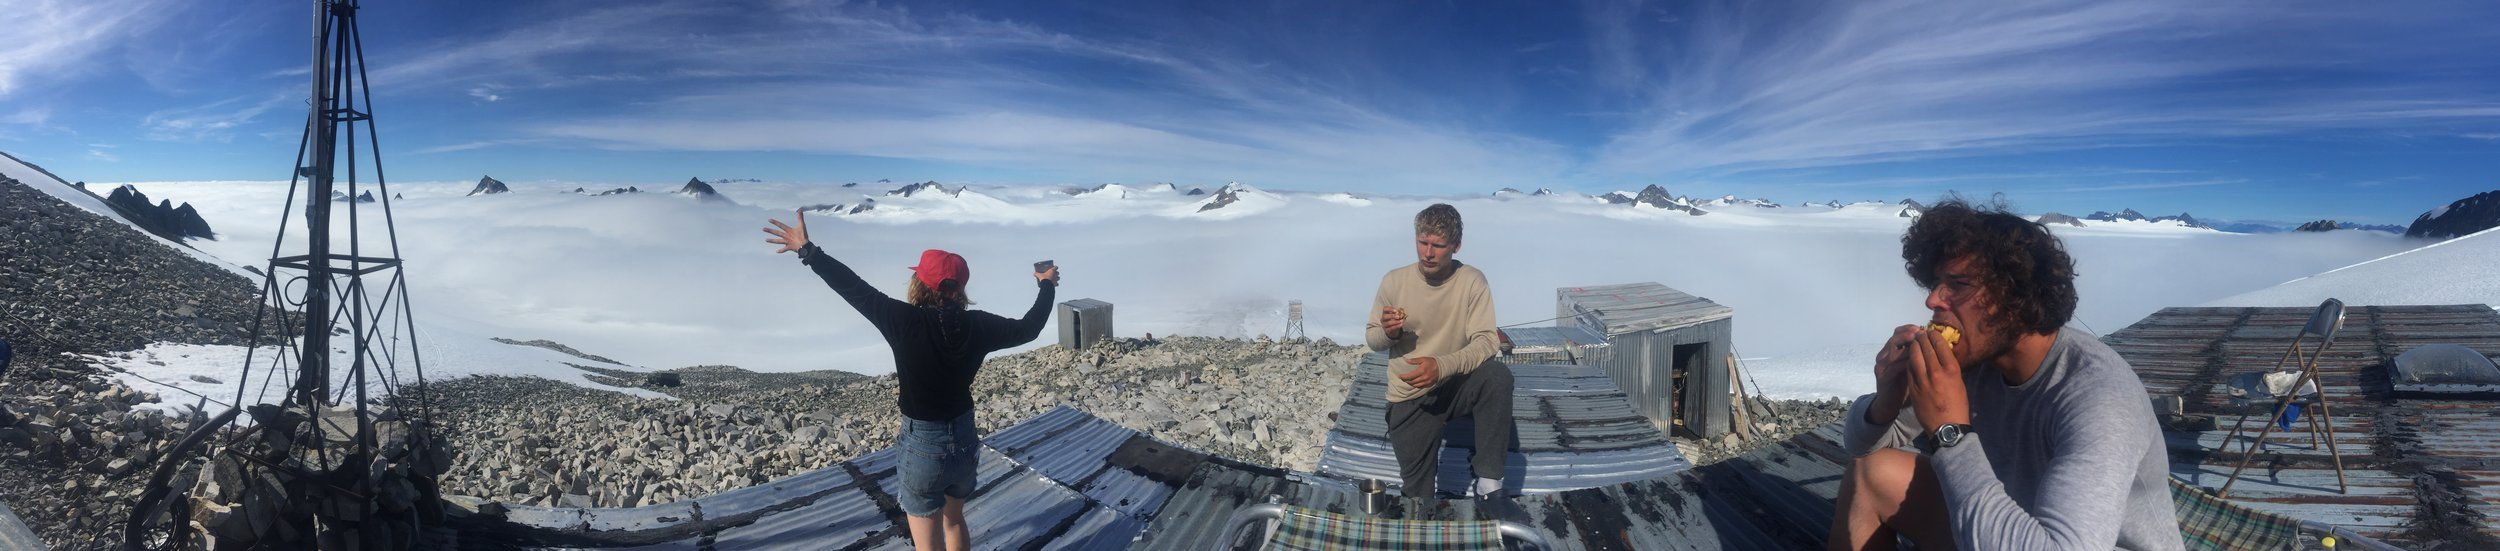 A photographic summary of life at Camp 8: radio, coffee, power stances and waffles atop the roof. From left to right: Danielle Beaty, Bryn Huxley-Reicher, and Avery Stewart. Photo: Amy Towell.